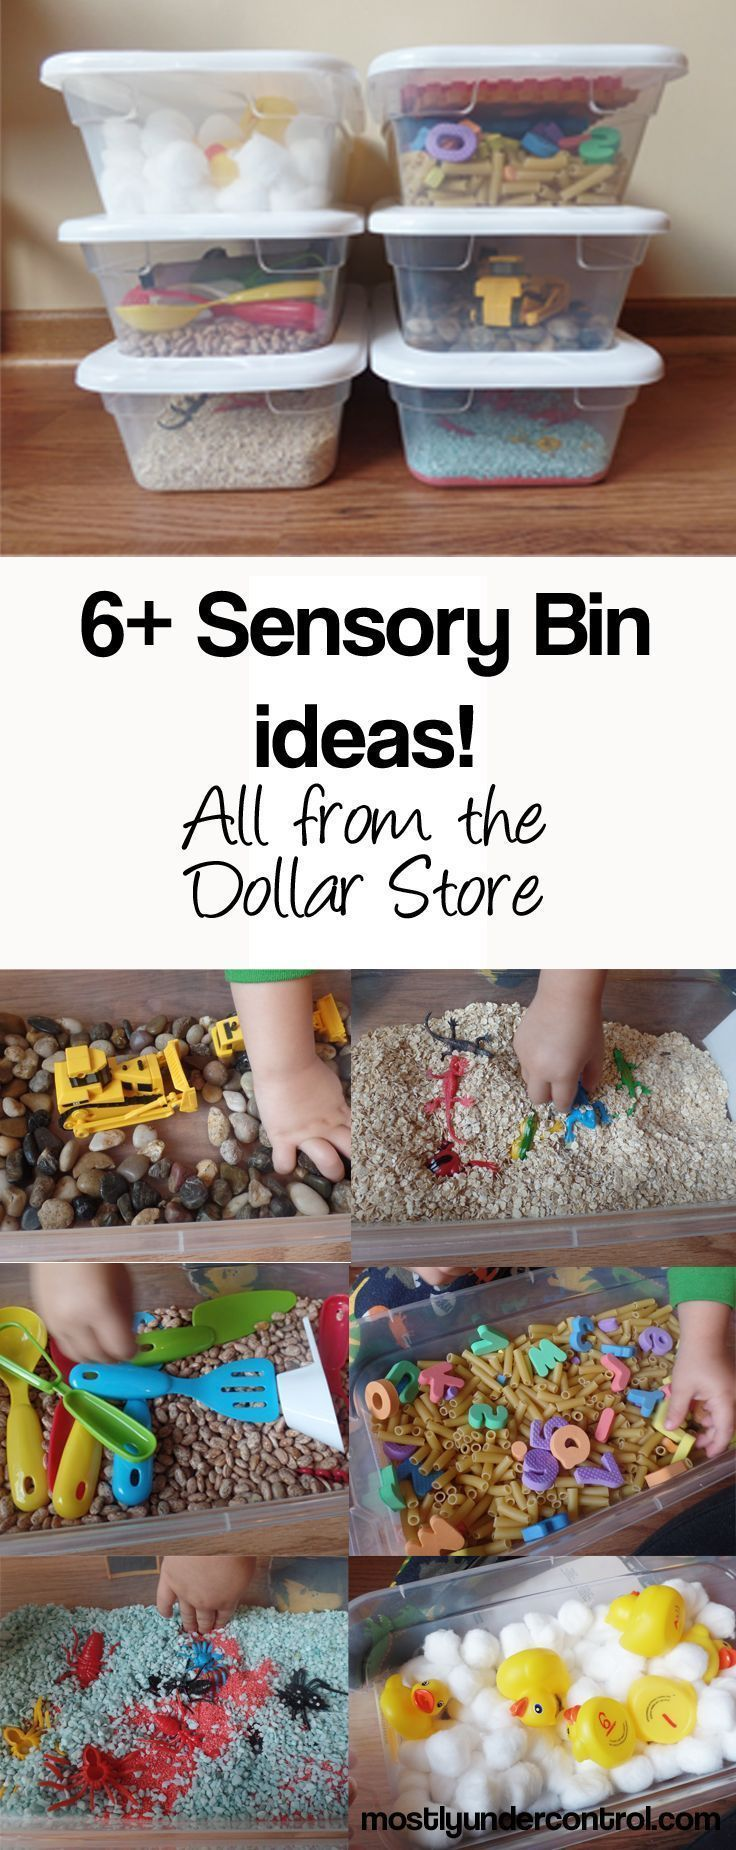 6+ Sensory Bin Ideas for Under $30!